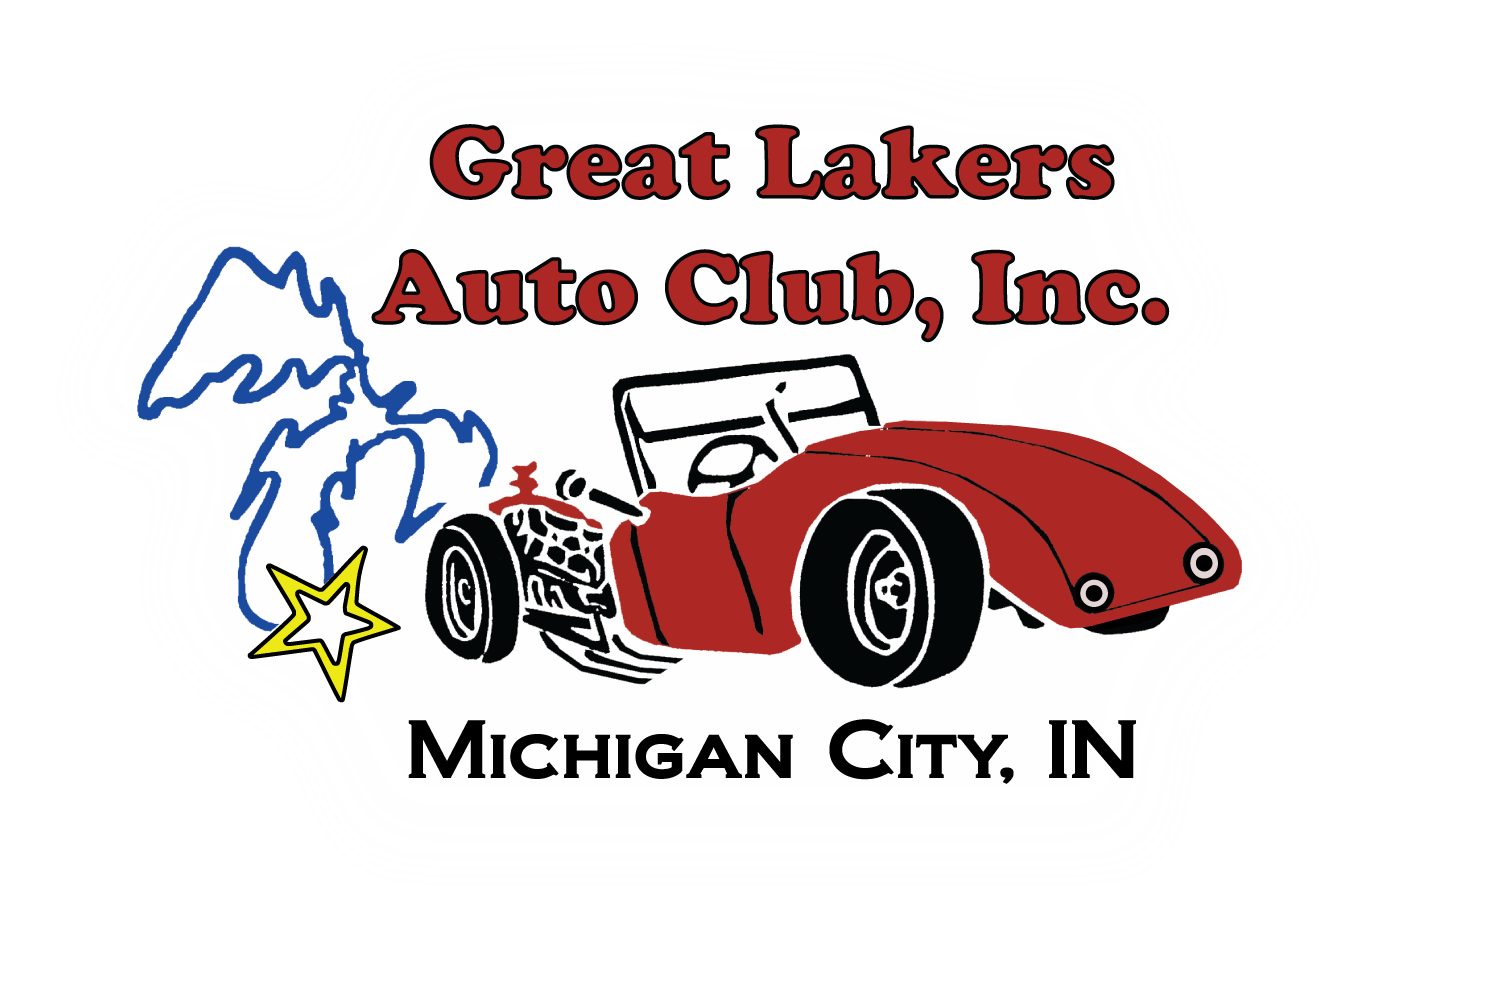 Great Lakers Auto Club, Inc.